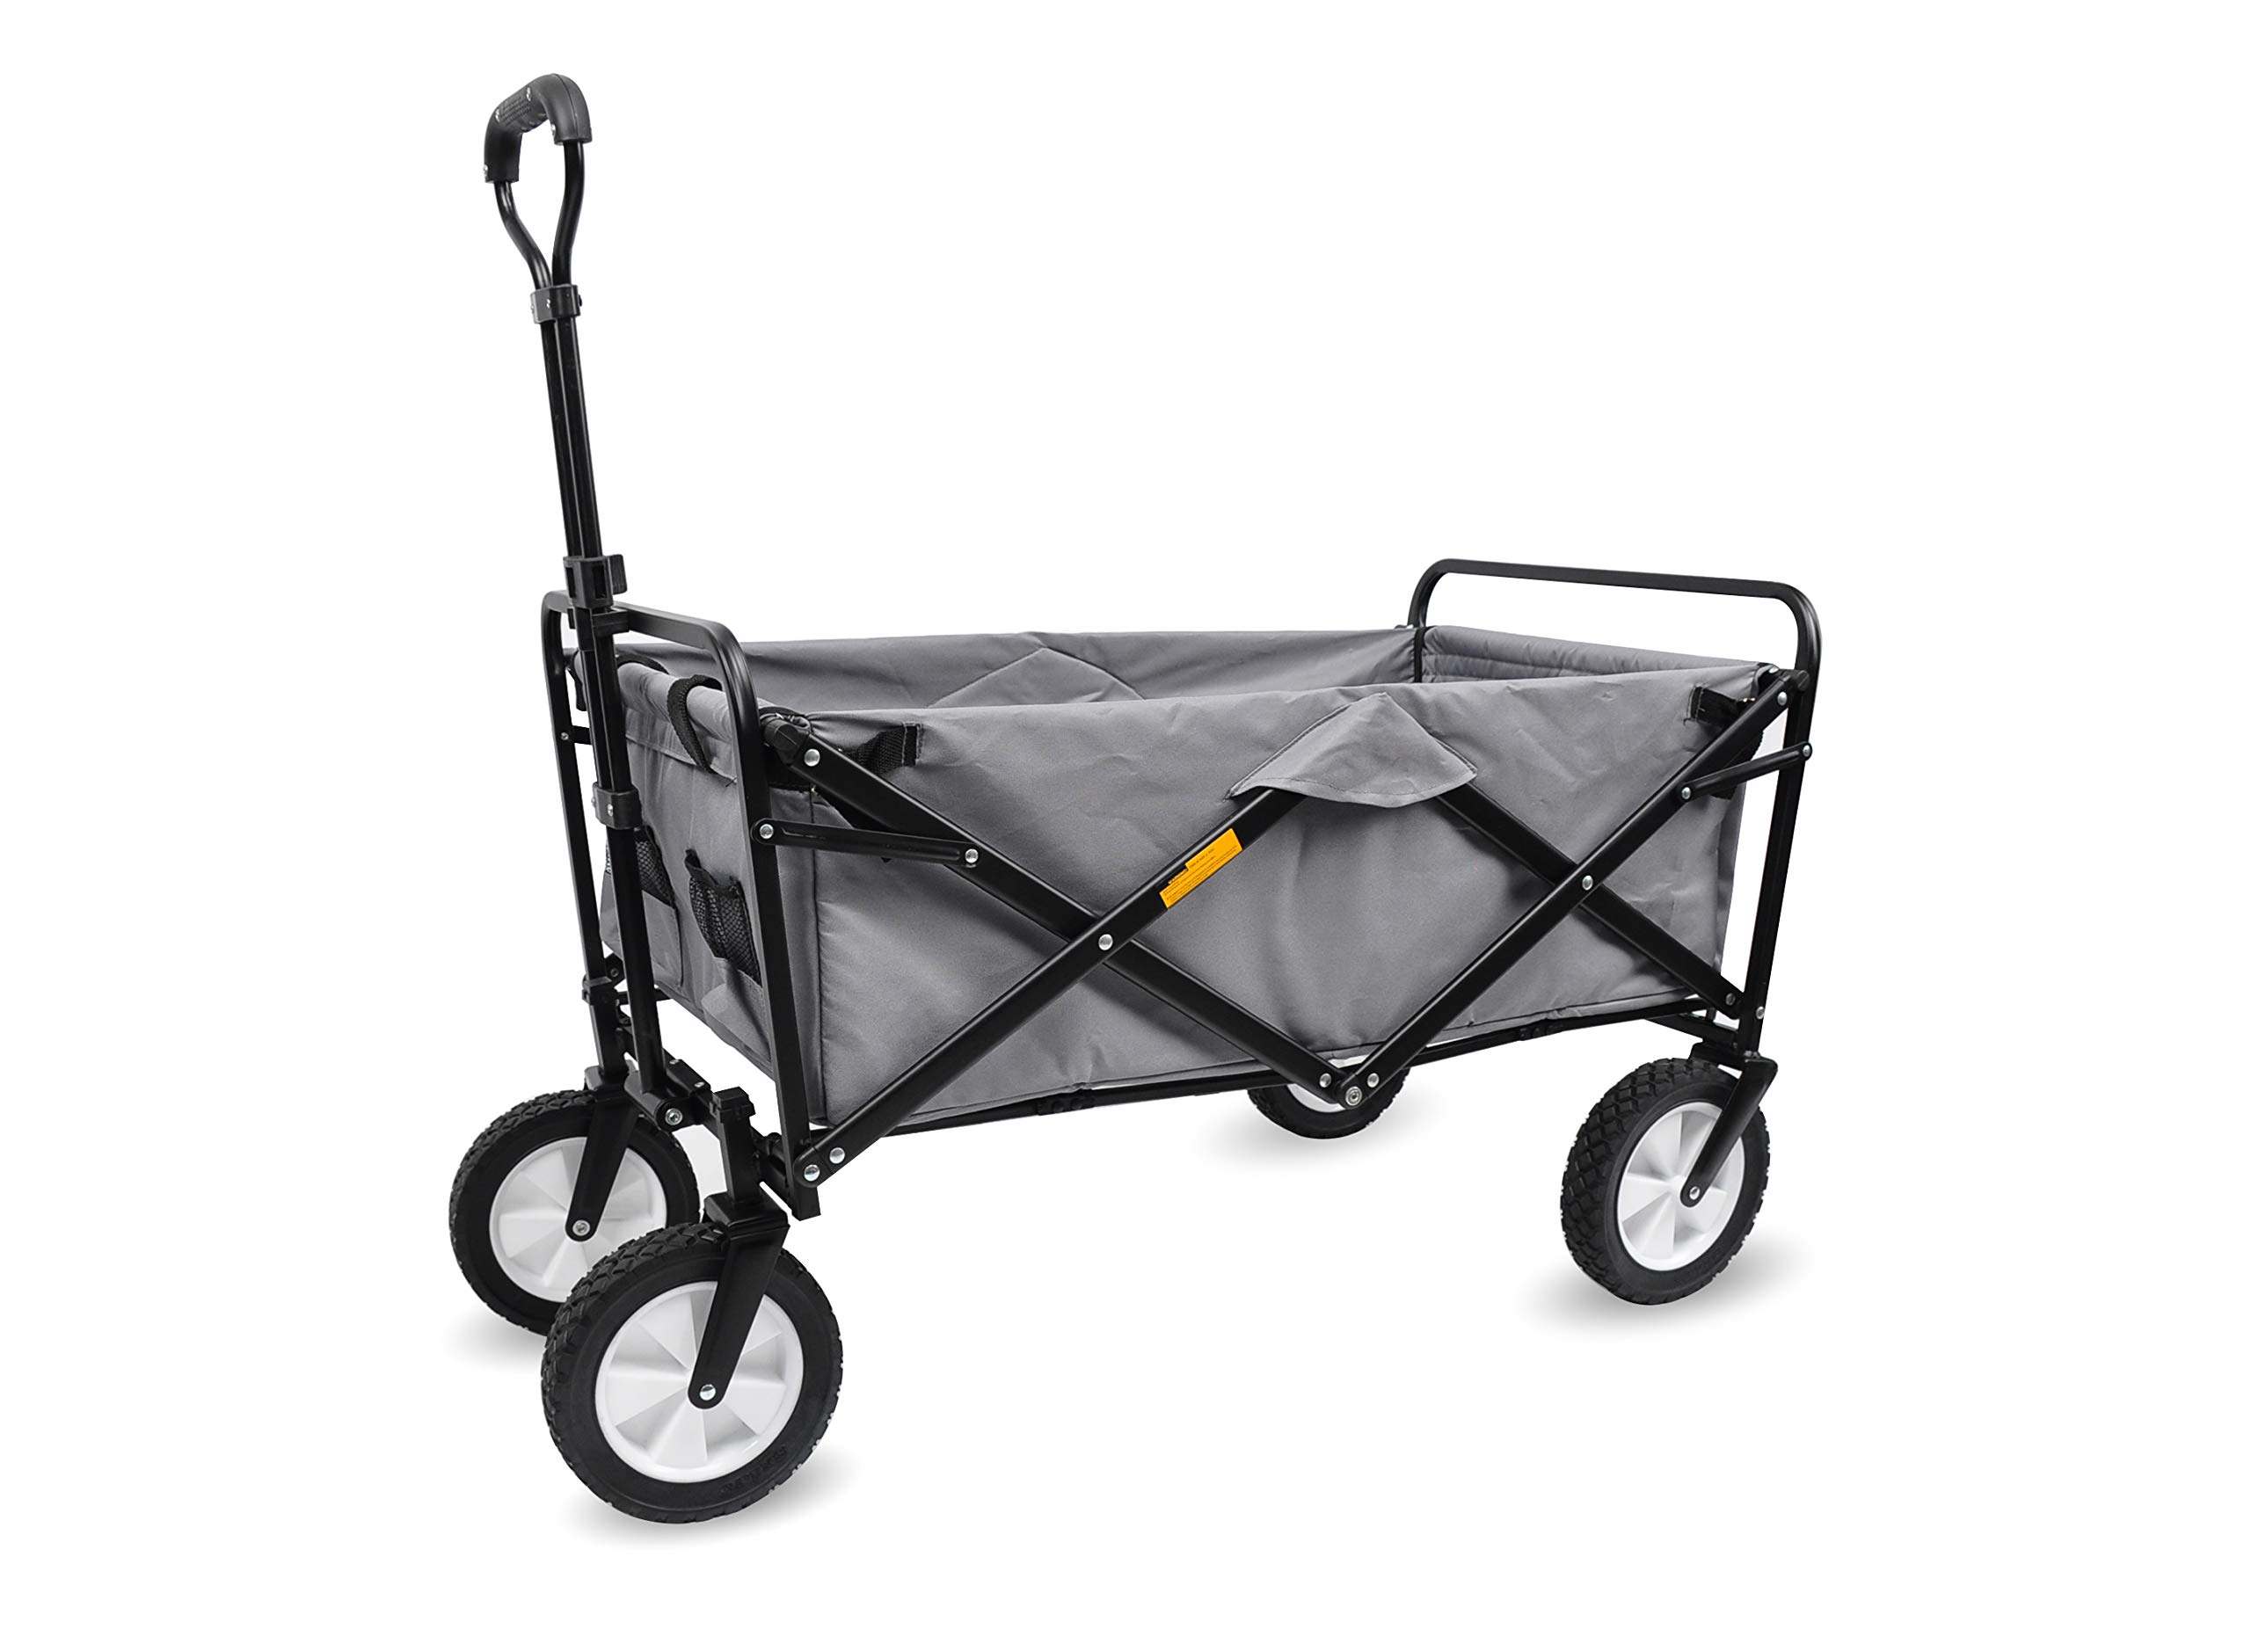 WHITSUNDAY Collapsible Folding Garden Outdoor Park Utility 30'' Picnic Wagon 1 Years Warranty (Dark Grey)